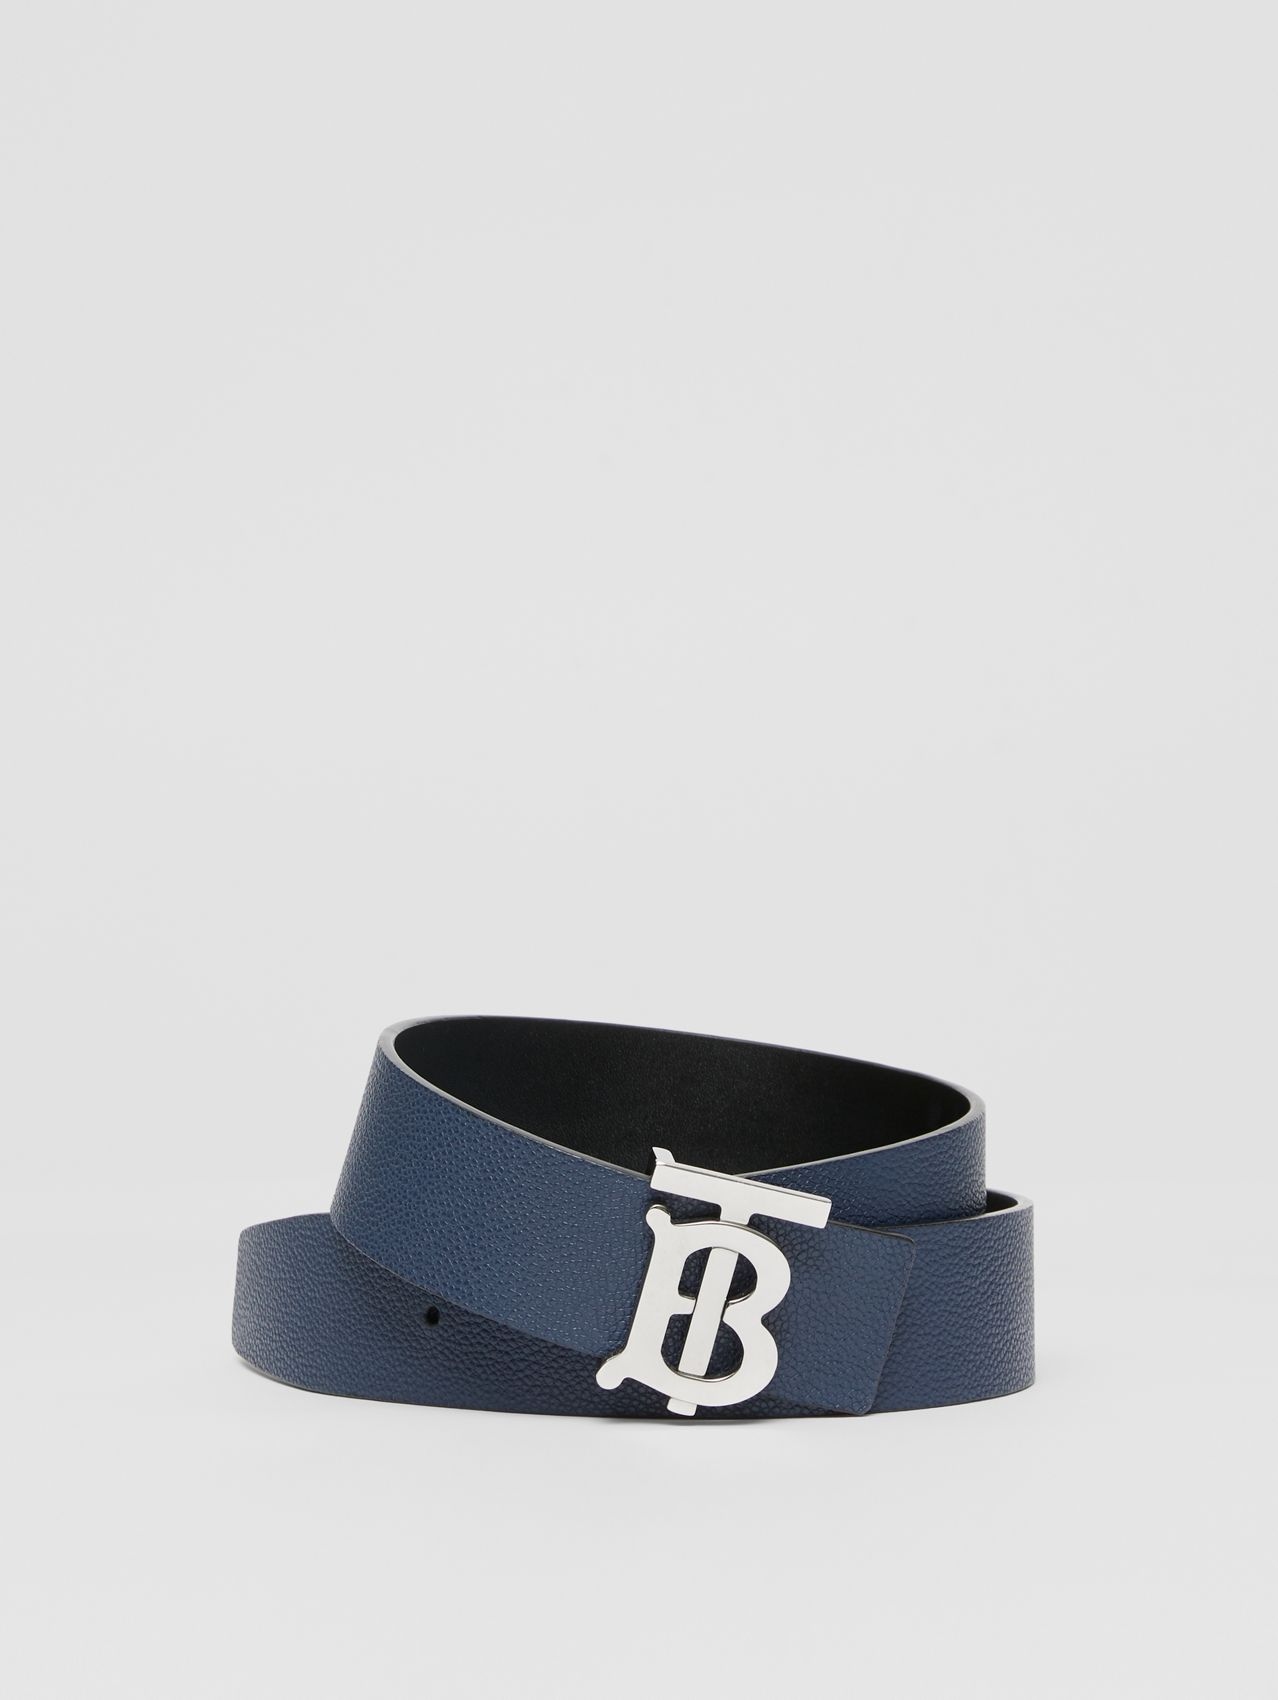 Reversible Monogram Motif Leather Belt (Navy/black)